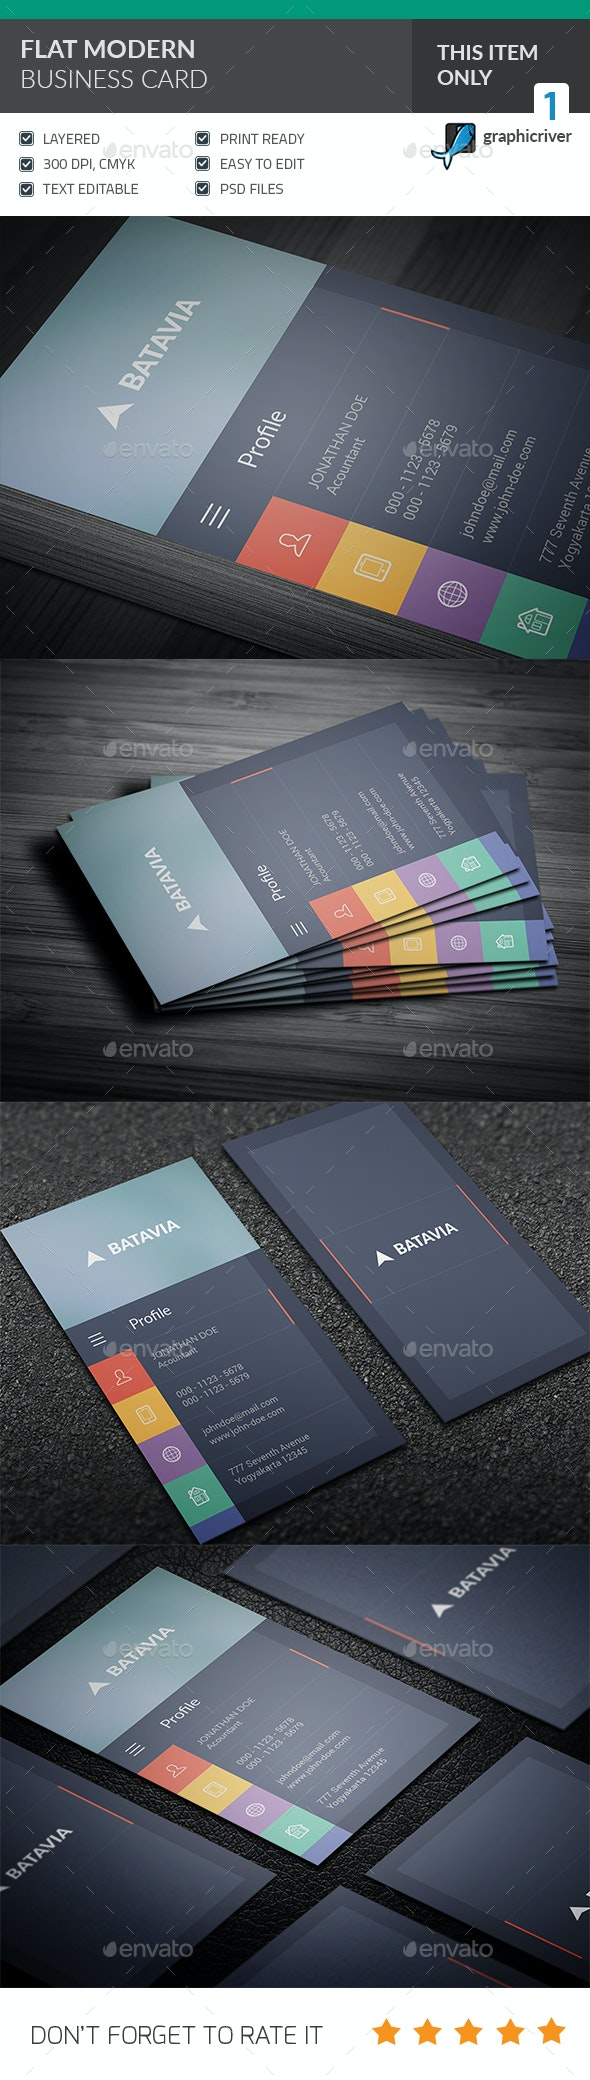 Flat Modern Business Card - Corporate Business Cards